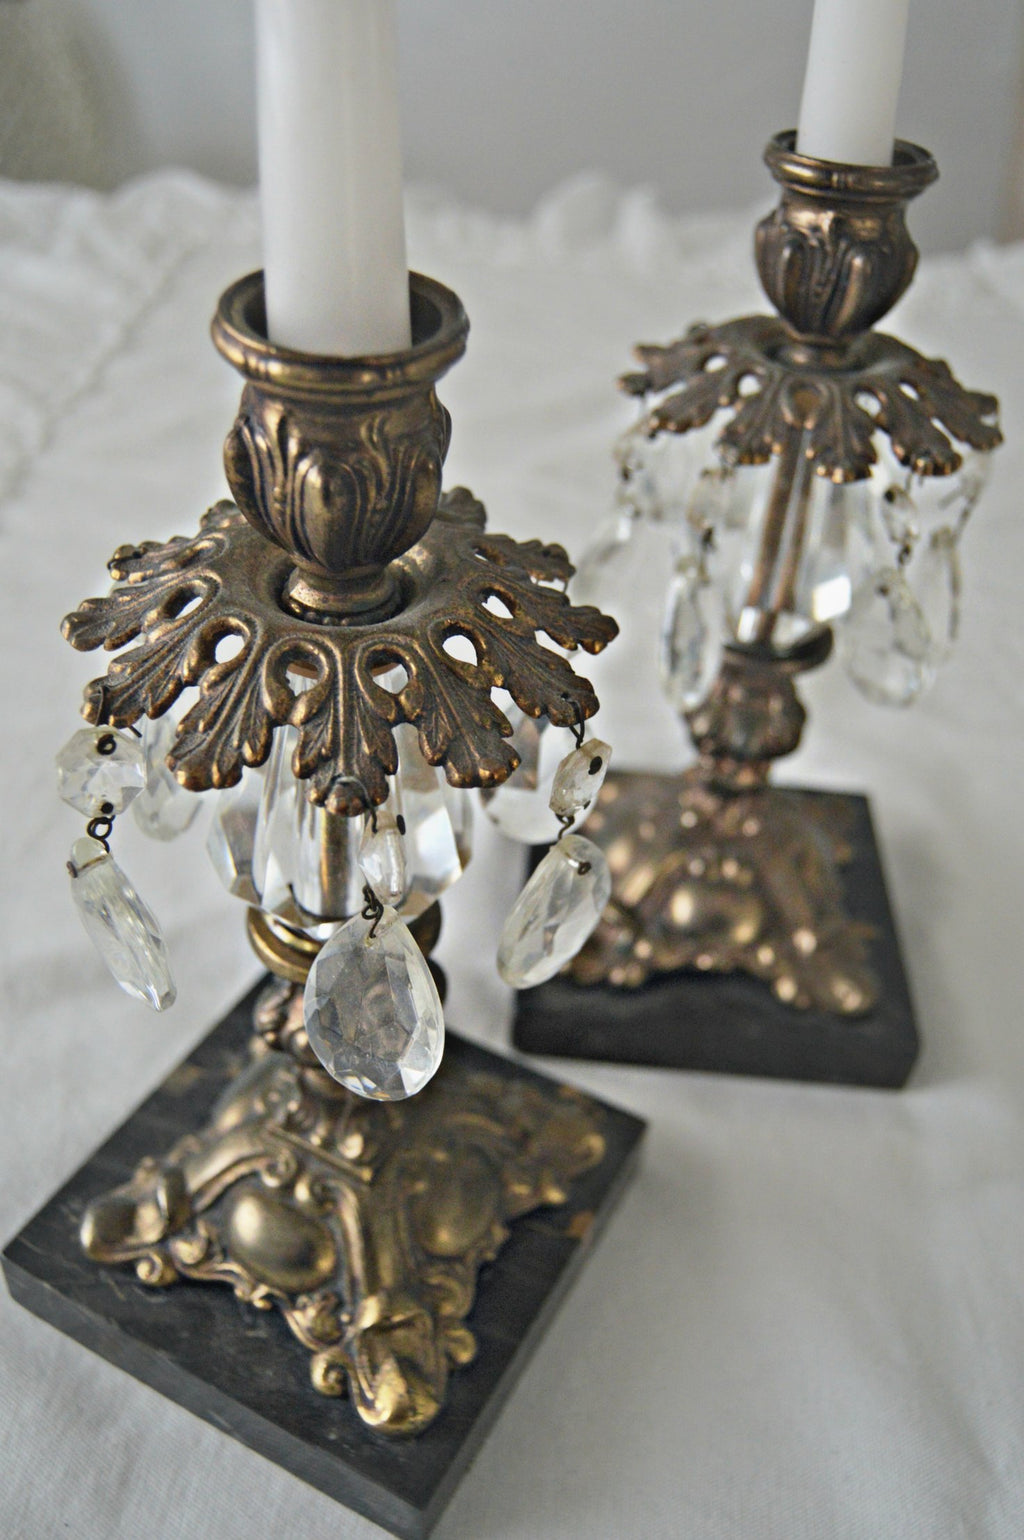 Brass Italian candlestick holders with hanging crystals